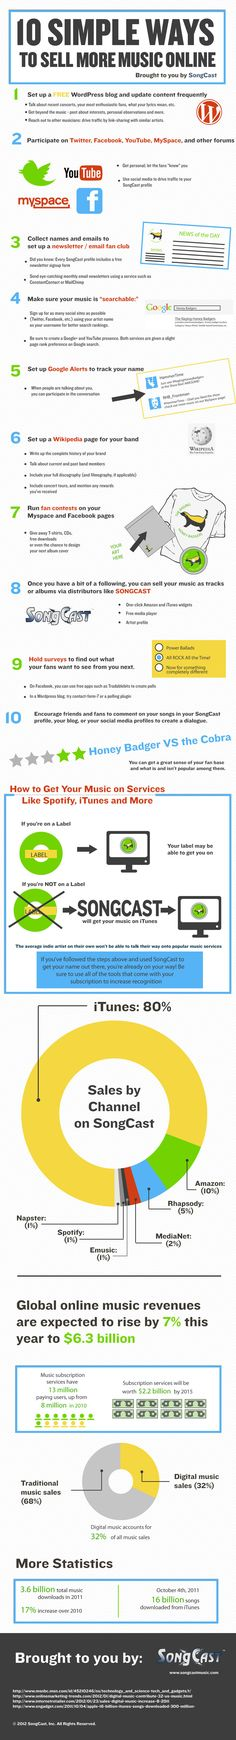 10 Ways To Sell Your Music Online Infographic